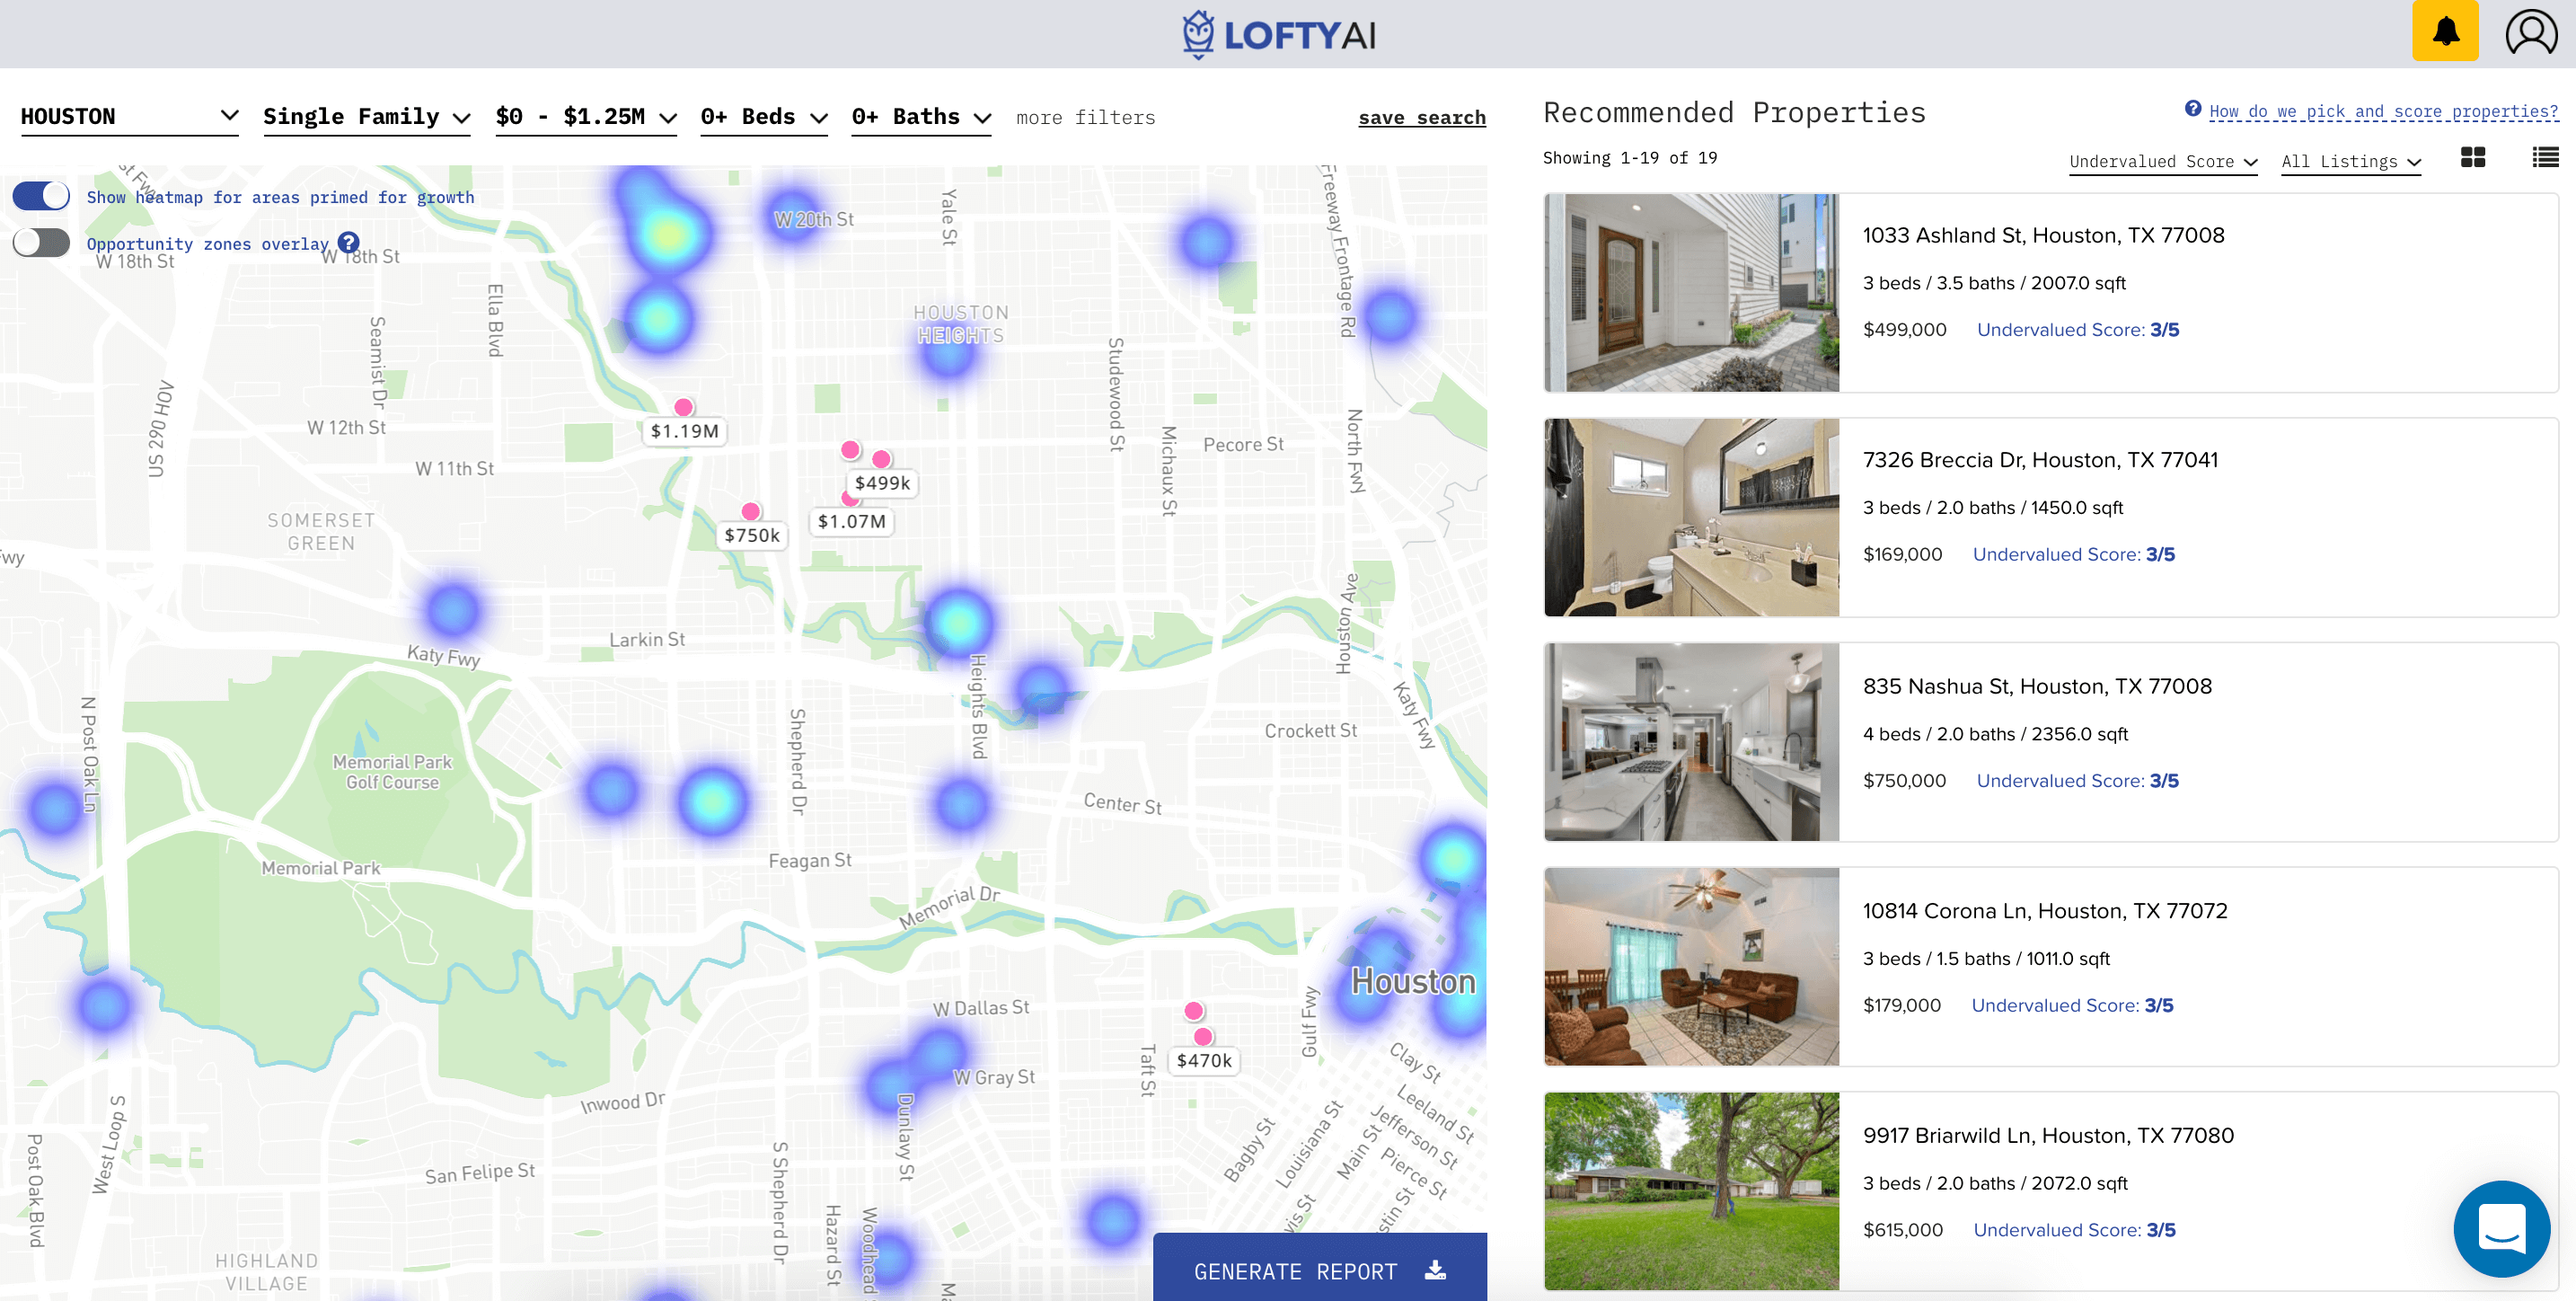 Lofty AI real estate machine learning platform